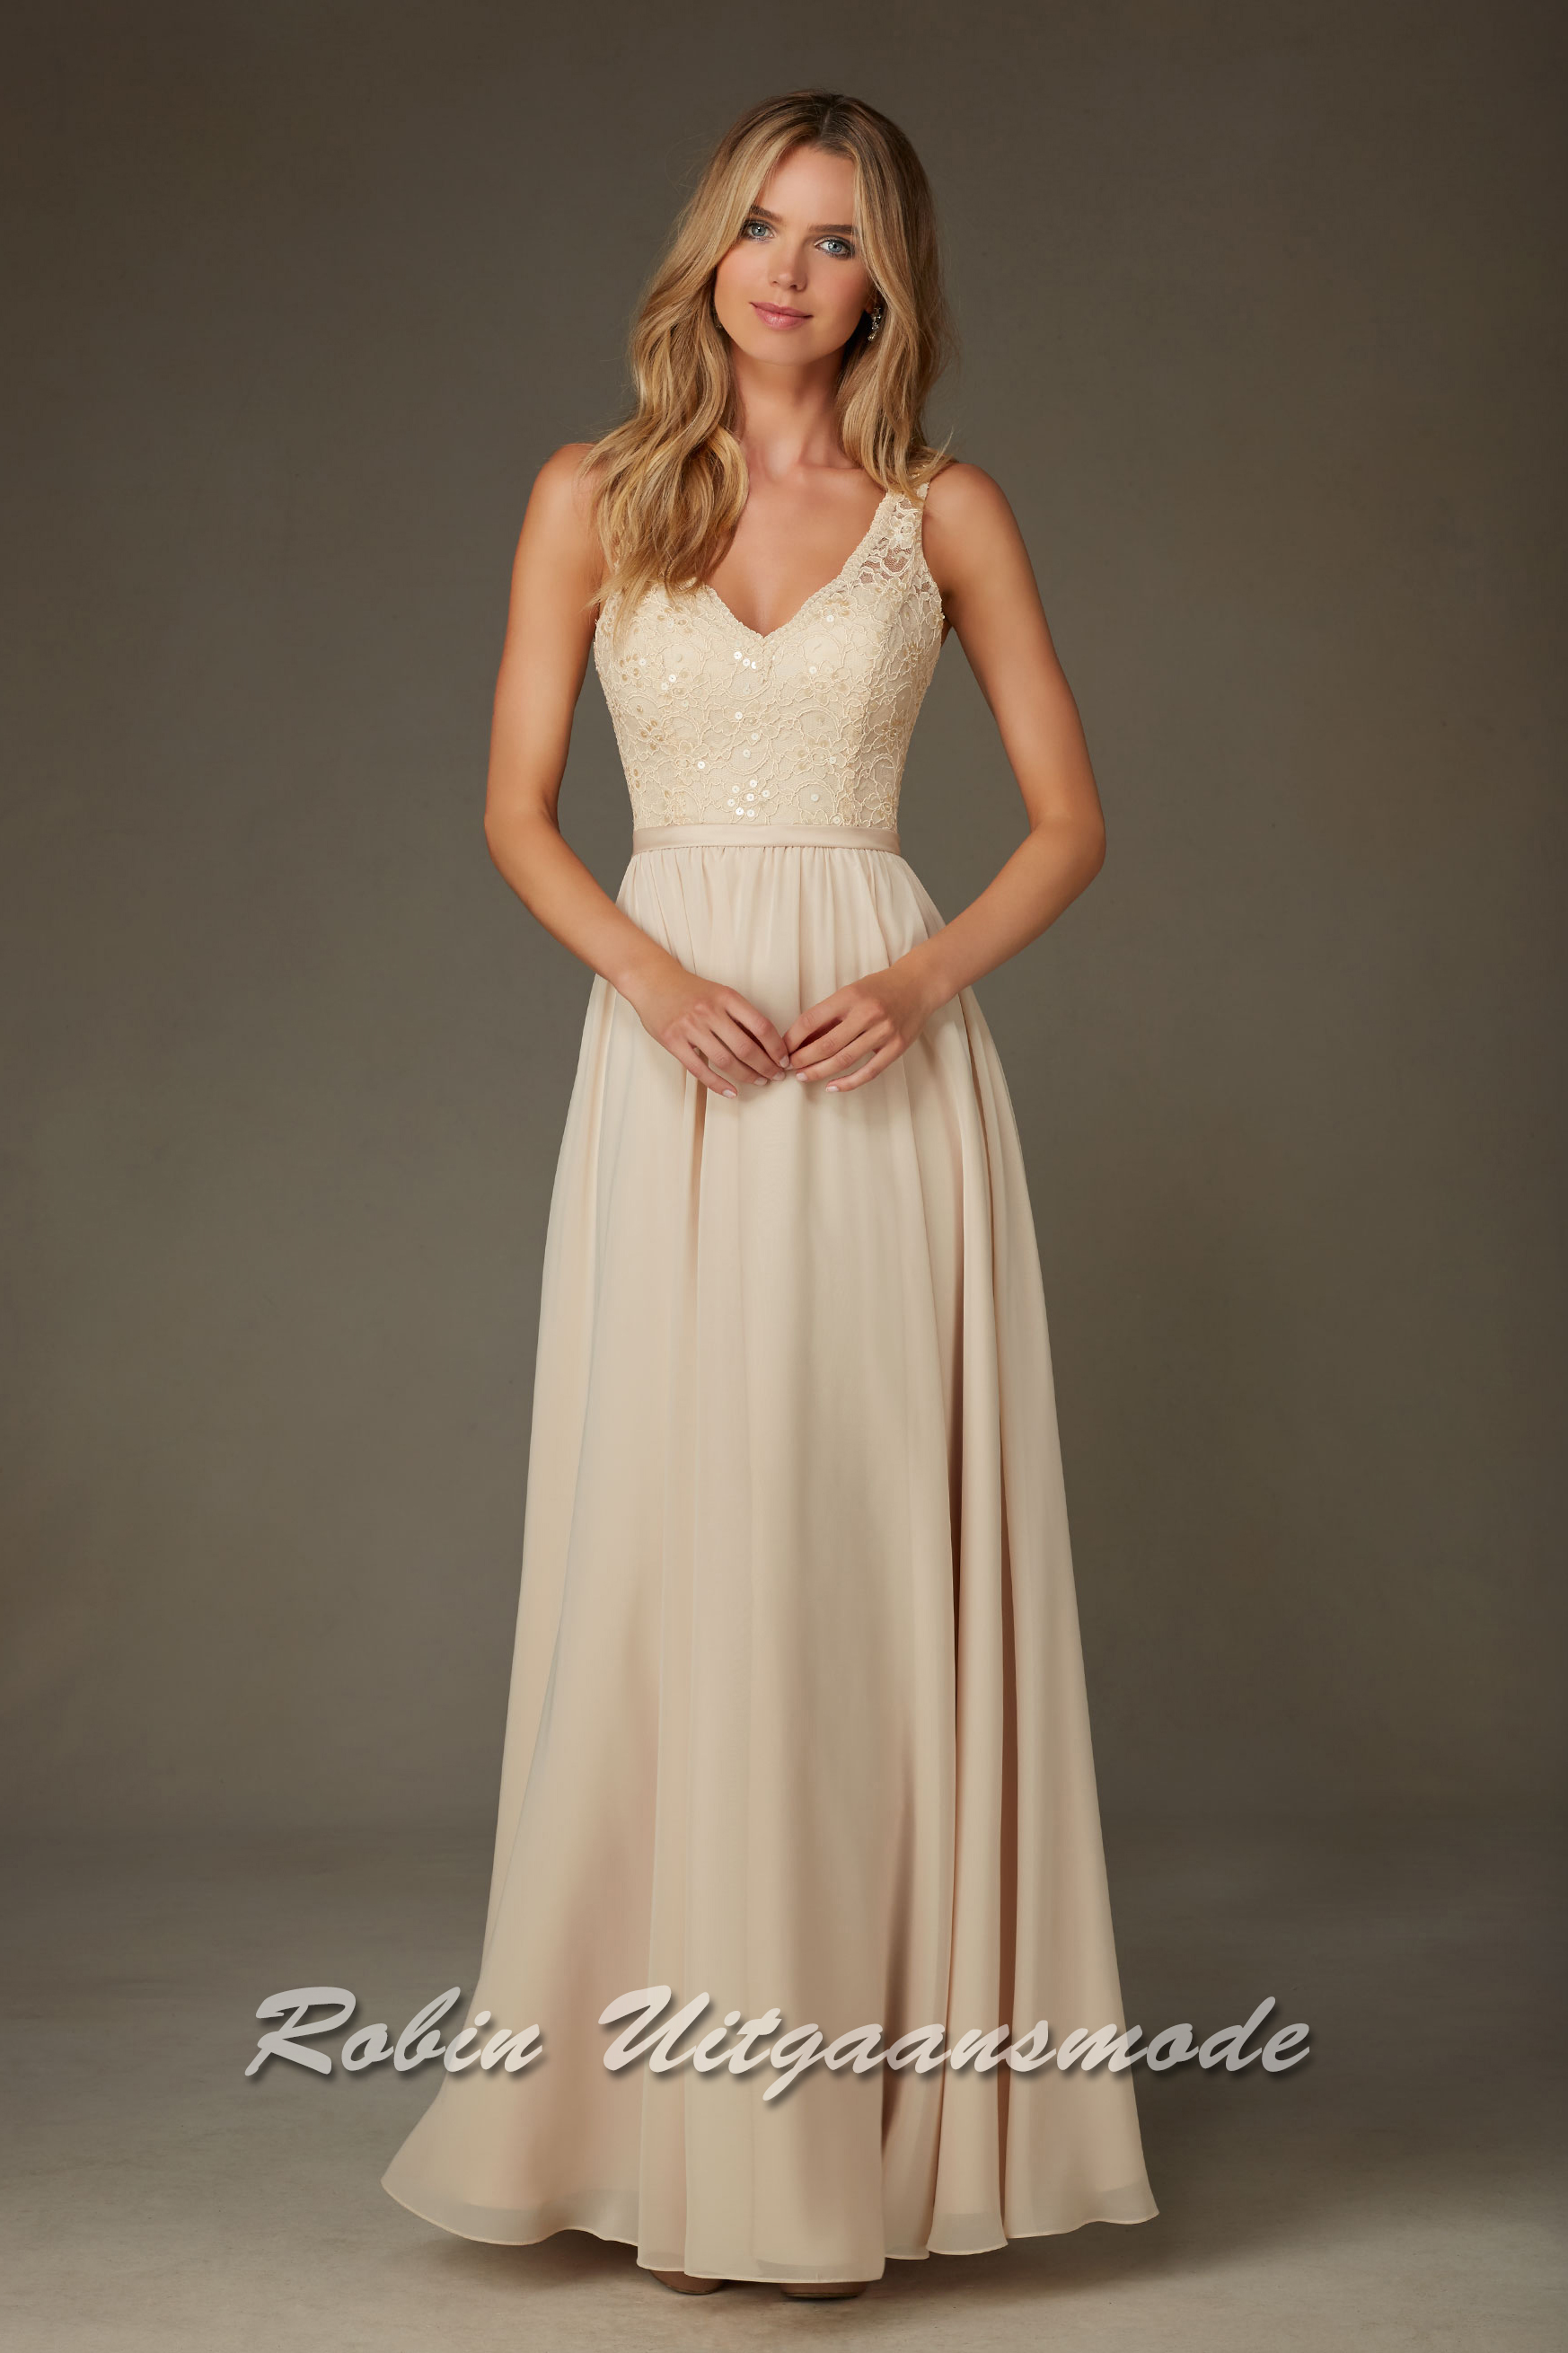 1d2418ec1f Elegant wedding dress with a beaded lace, V-neck bodice with flowy skirt.